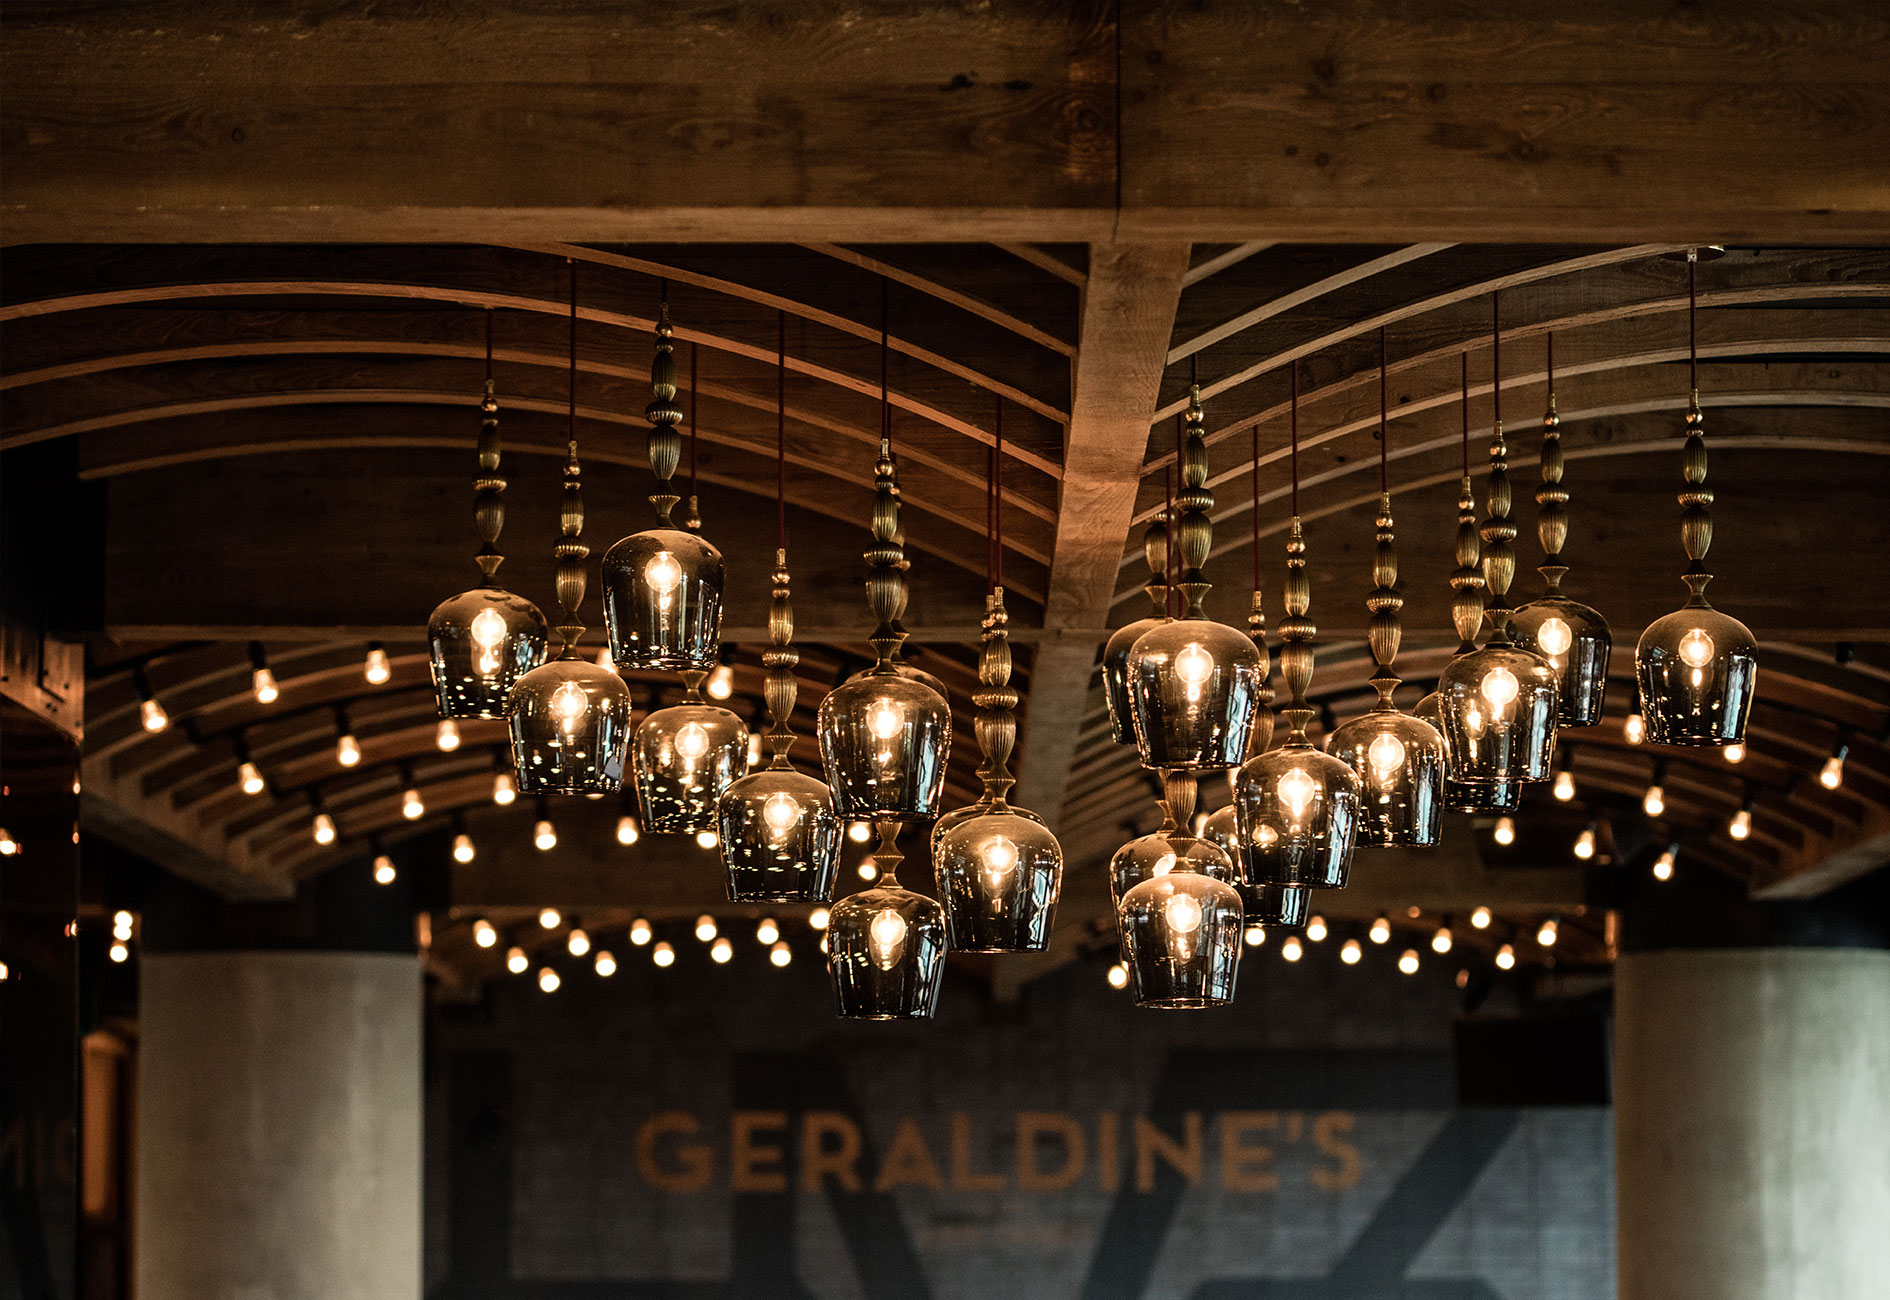 GERALDINES by Mark Zeff Design